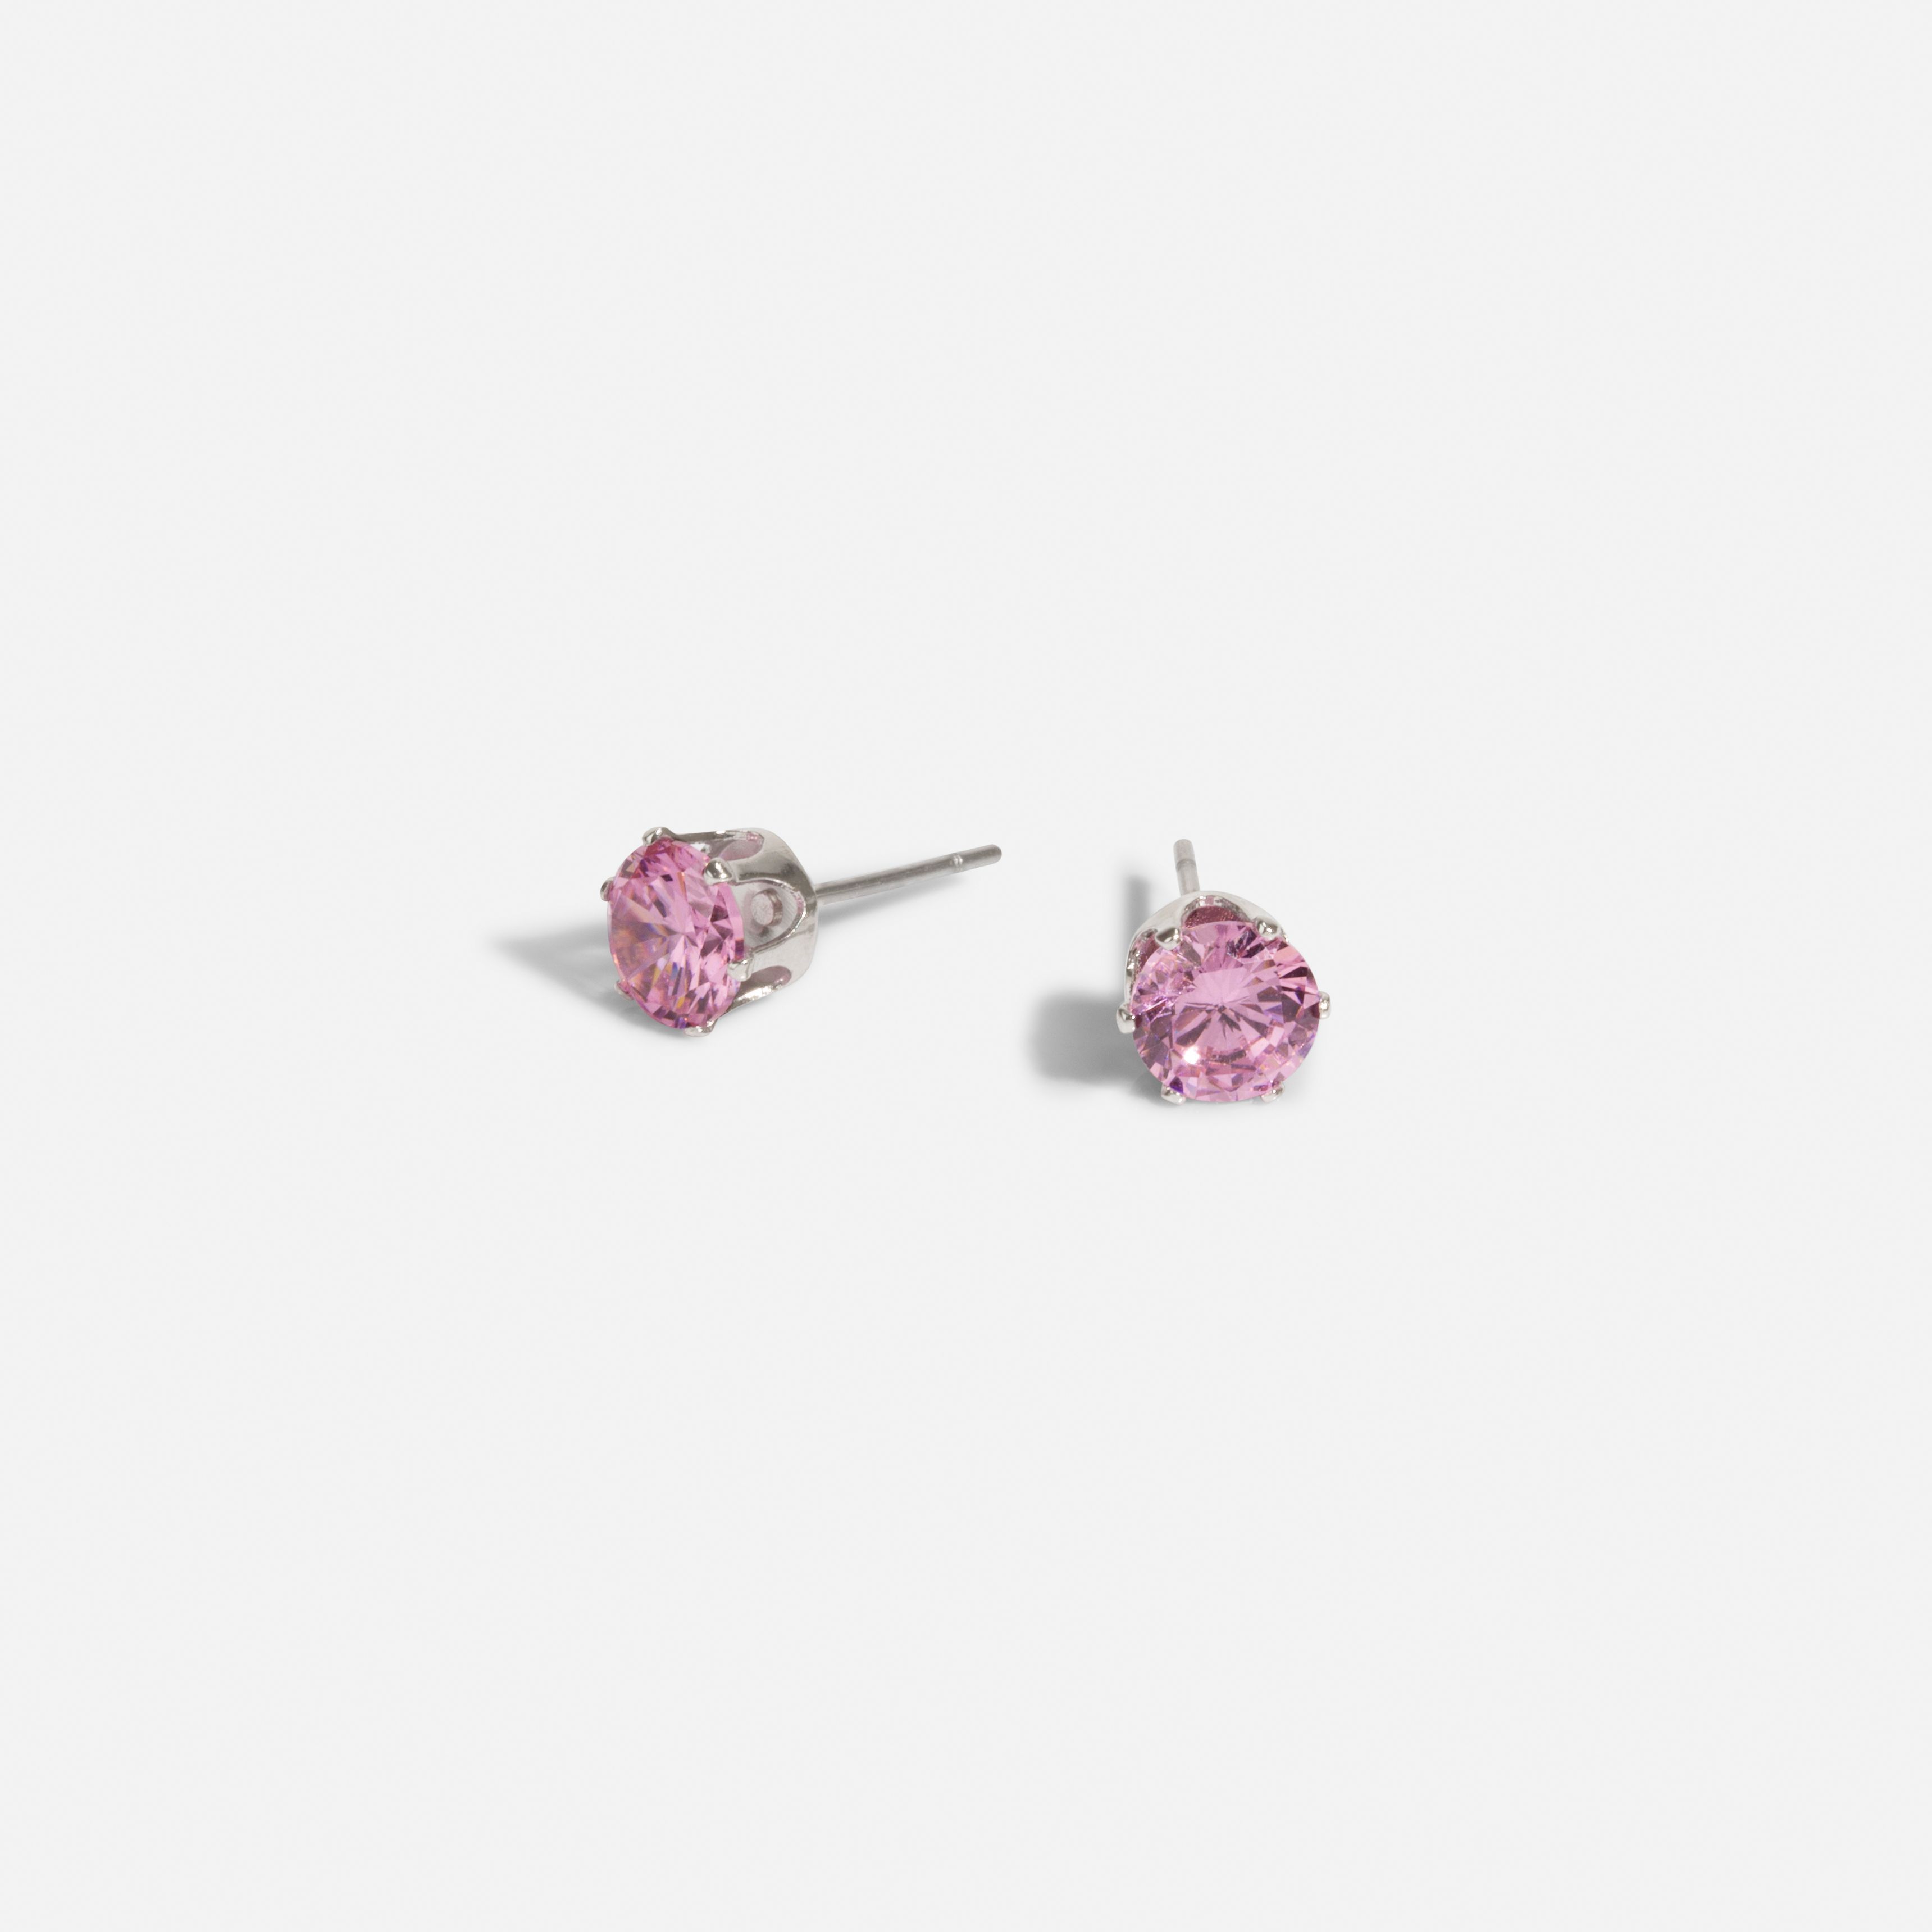 october birthstone earrings think pink le s impose